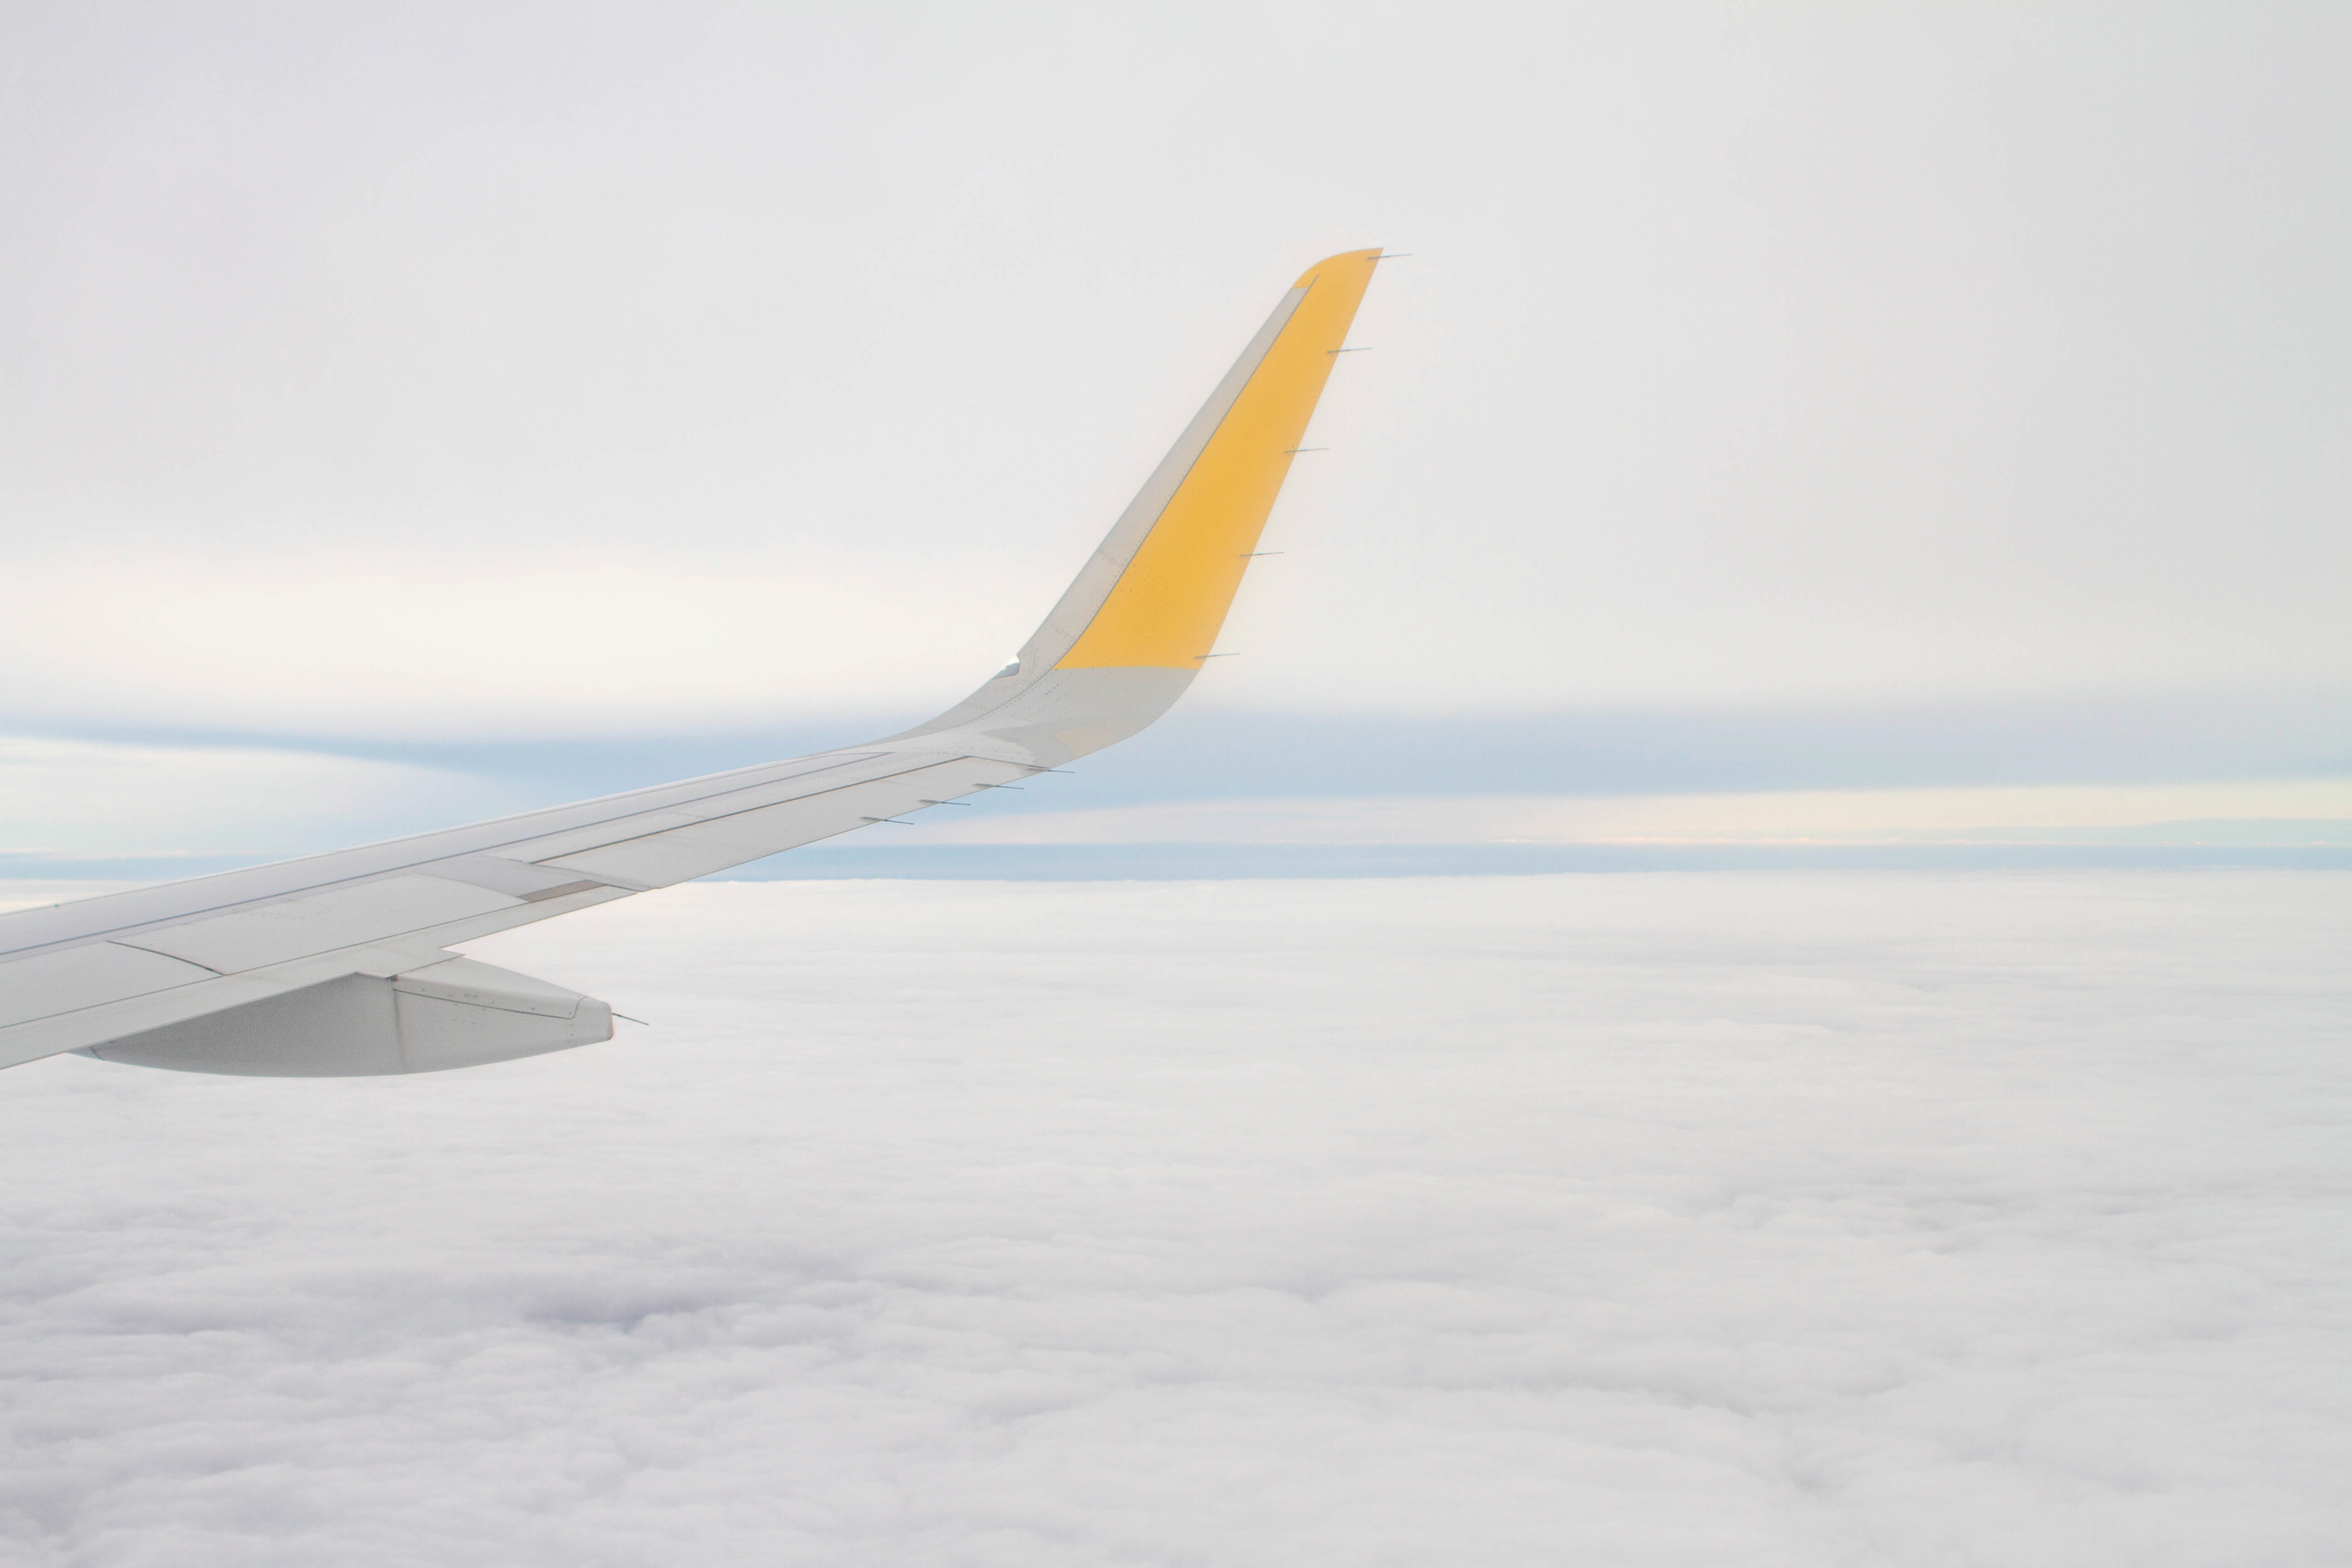 MessageGears helps enterprise companies in travel industry reach customers with timely messages